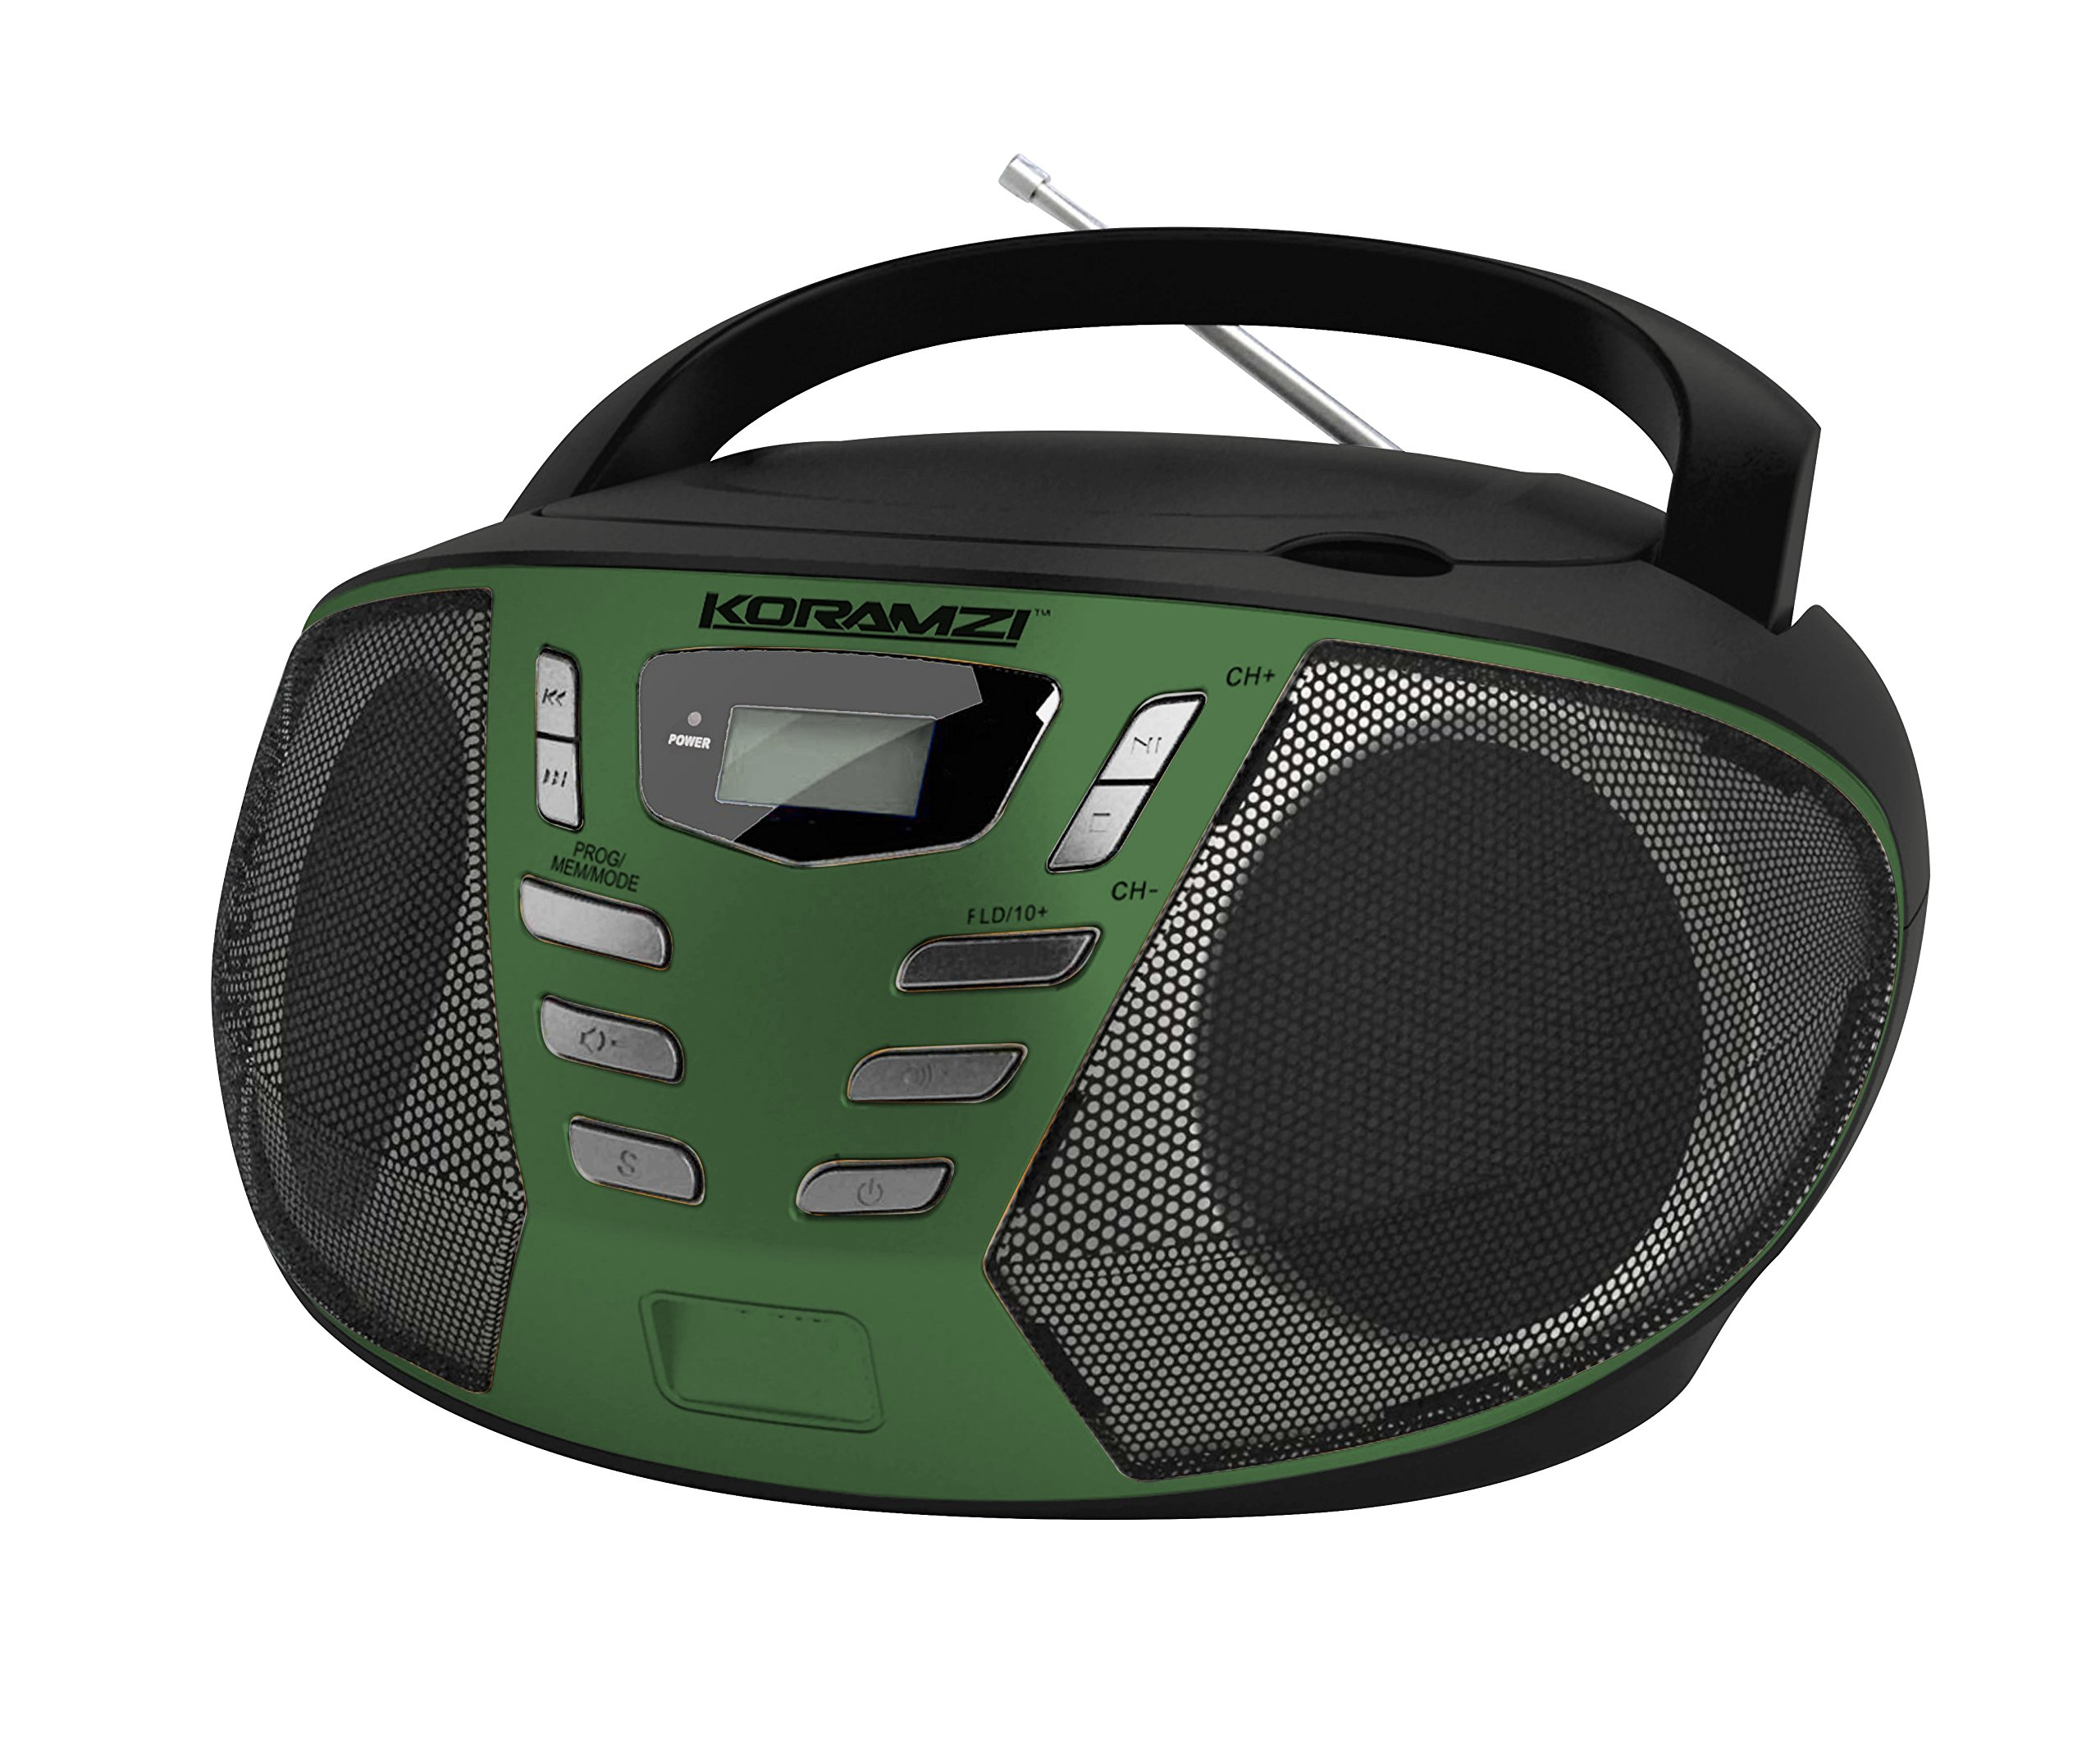 KORAMZI Portable CD Boombox with AM/FM Radio,AUX IN, Top Loading CD Player, Telescopic Antenna, LCD Display for Indoor & Outdoor,Offices,Home,Restaurants,Picnics,School ,Camping (Black/Green) CD55-BKG